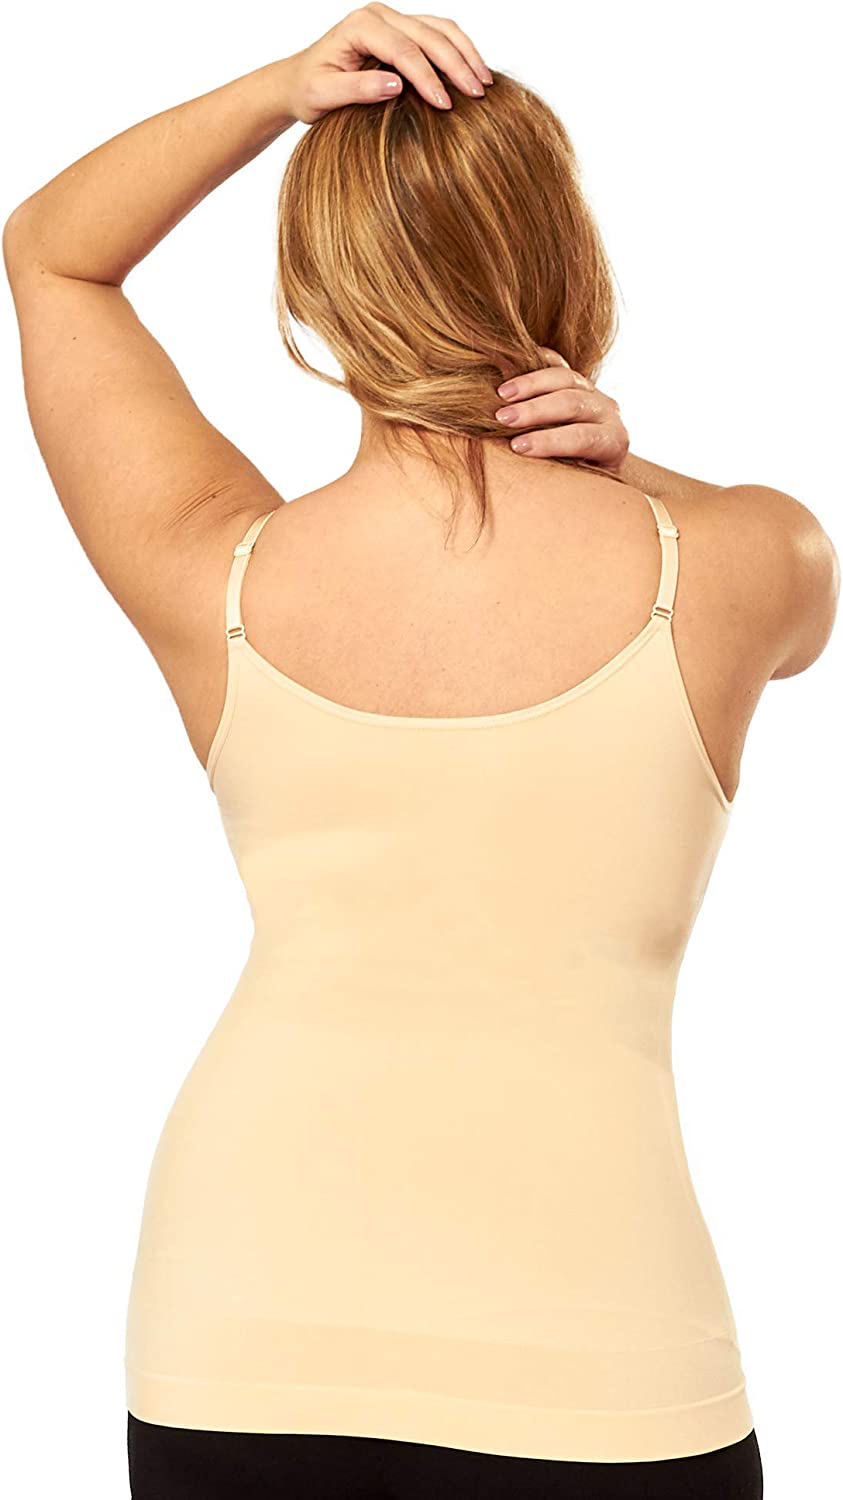 Compression Tummy Control Camisole for Women Shapewear for Women Shapermint Scoop Neck Cami